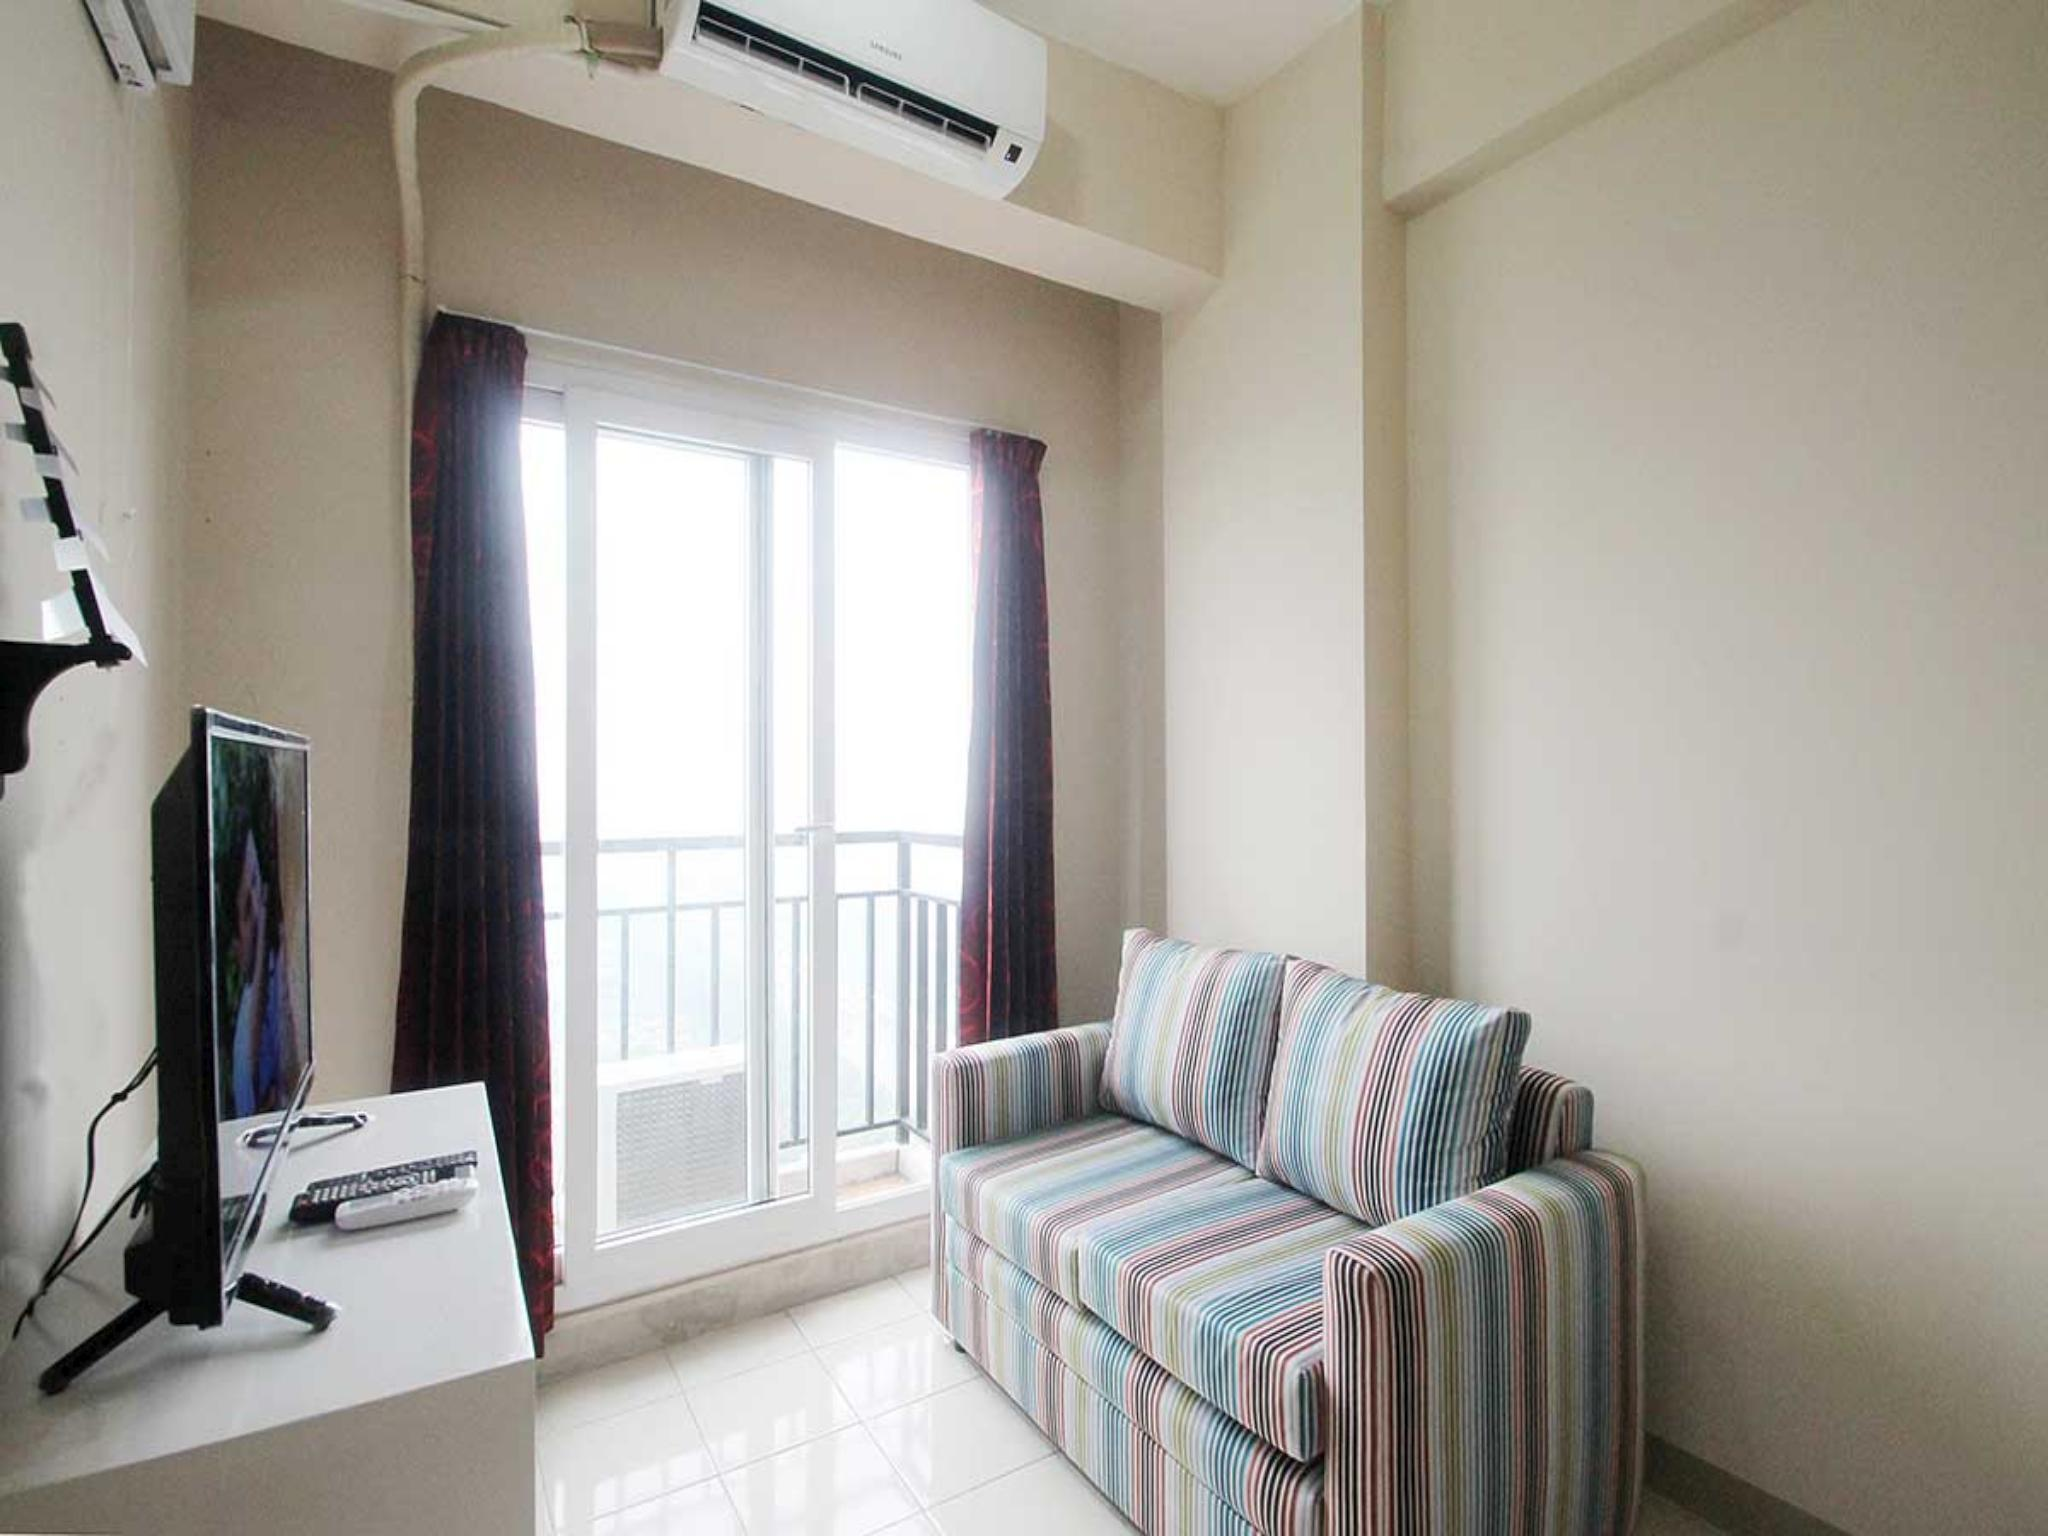 2 Bedroom At Apartment Sunter Park View